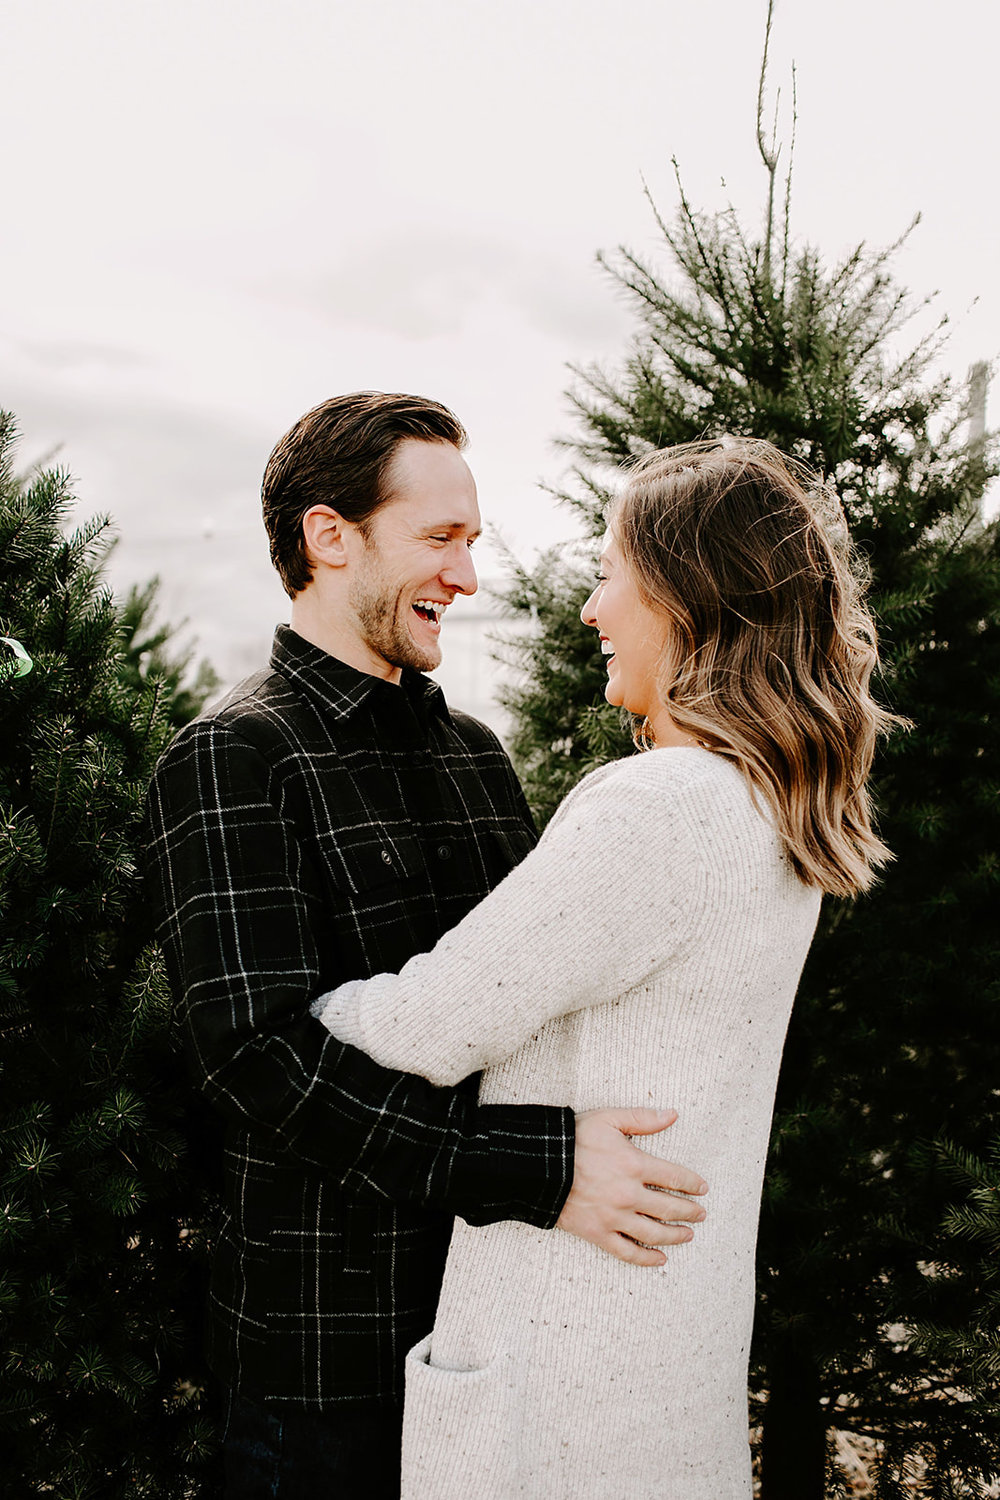 Alex and Andy Engagement Session in Noblesville Indiana by Emily Elyse Wehner Photography LLC-5.jpg